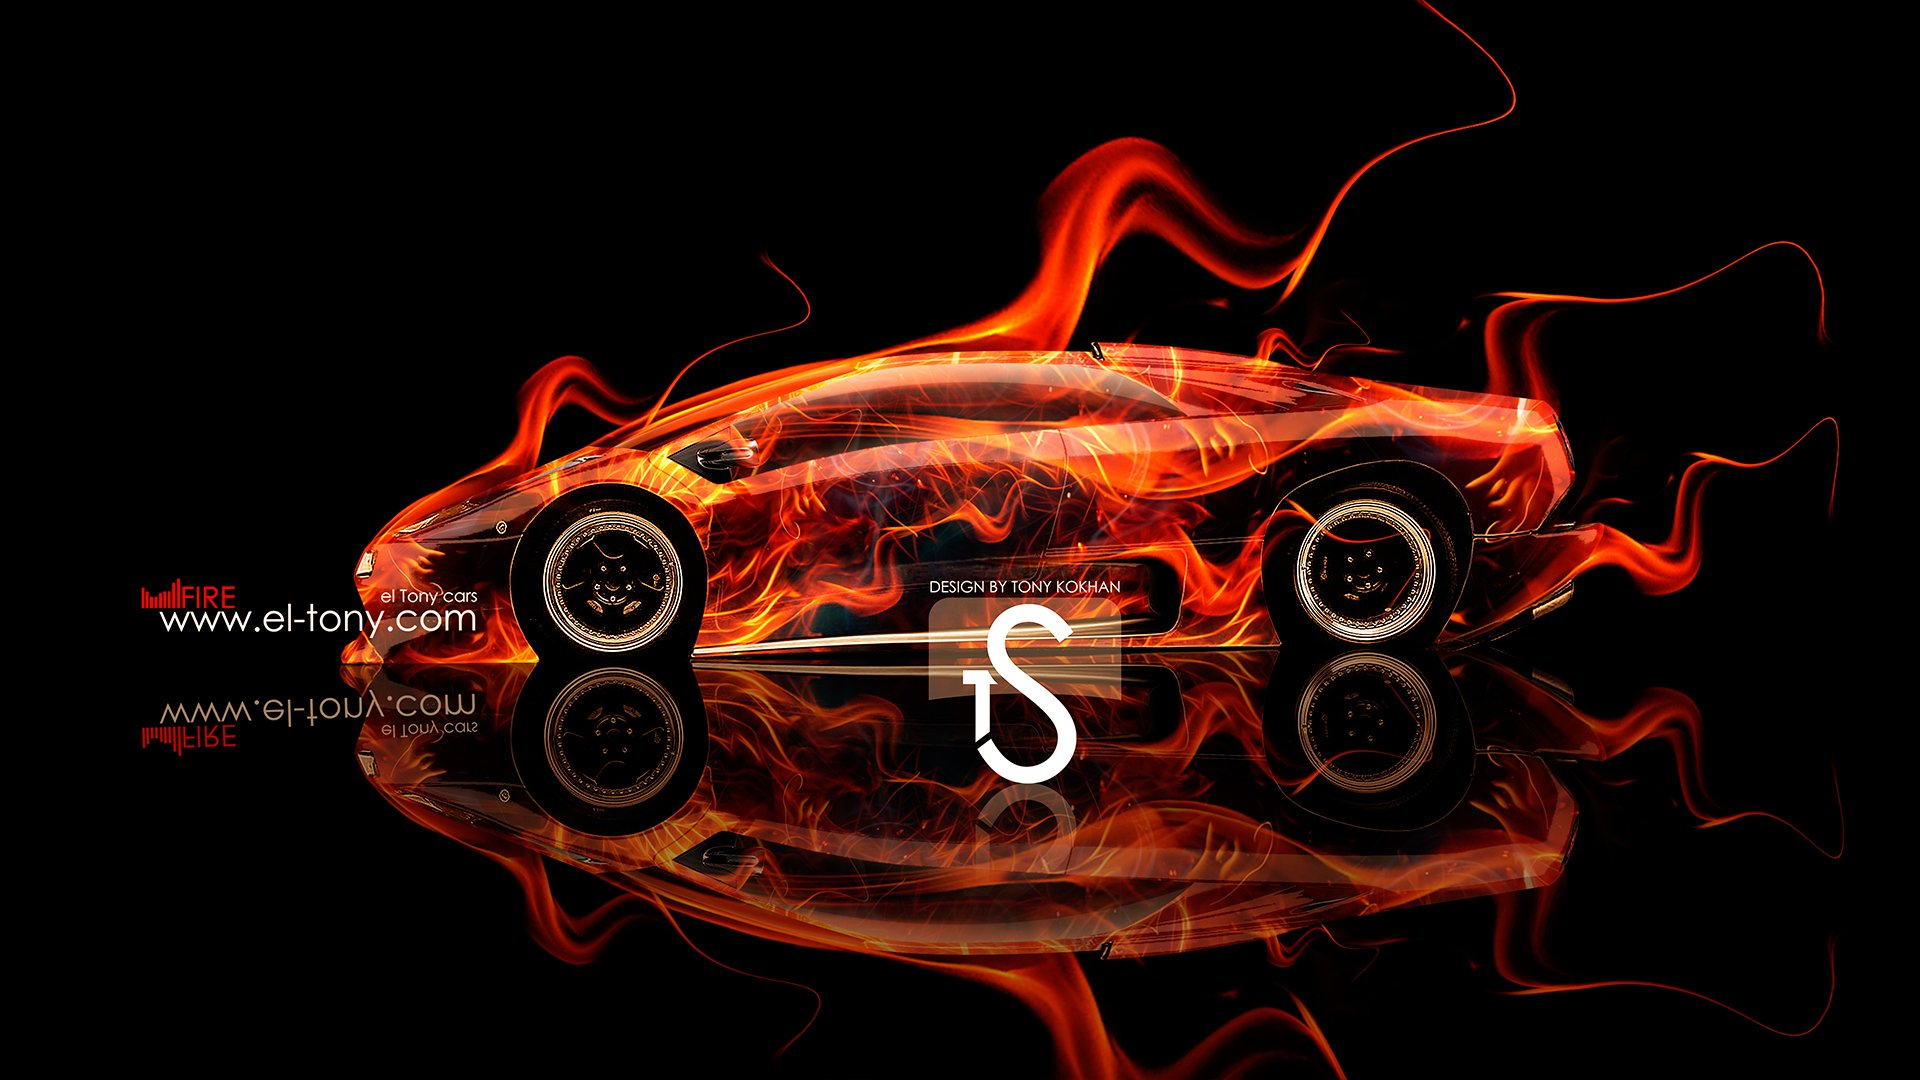 Lamborghini Diablo VT Side Fire Car 2013 HD Wallpapers design by Tony 1920x1080